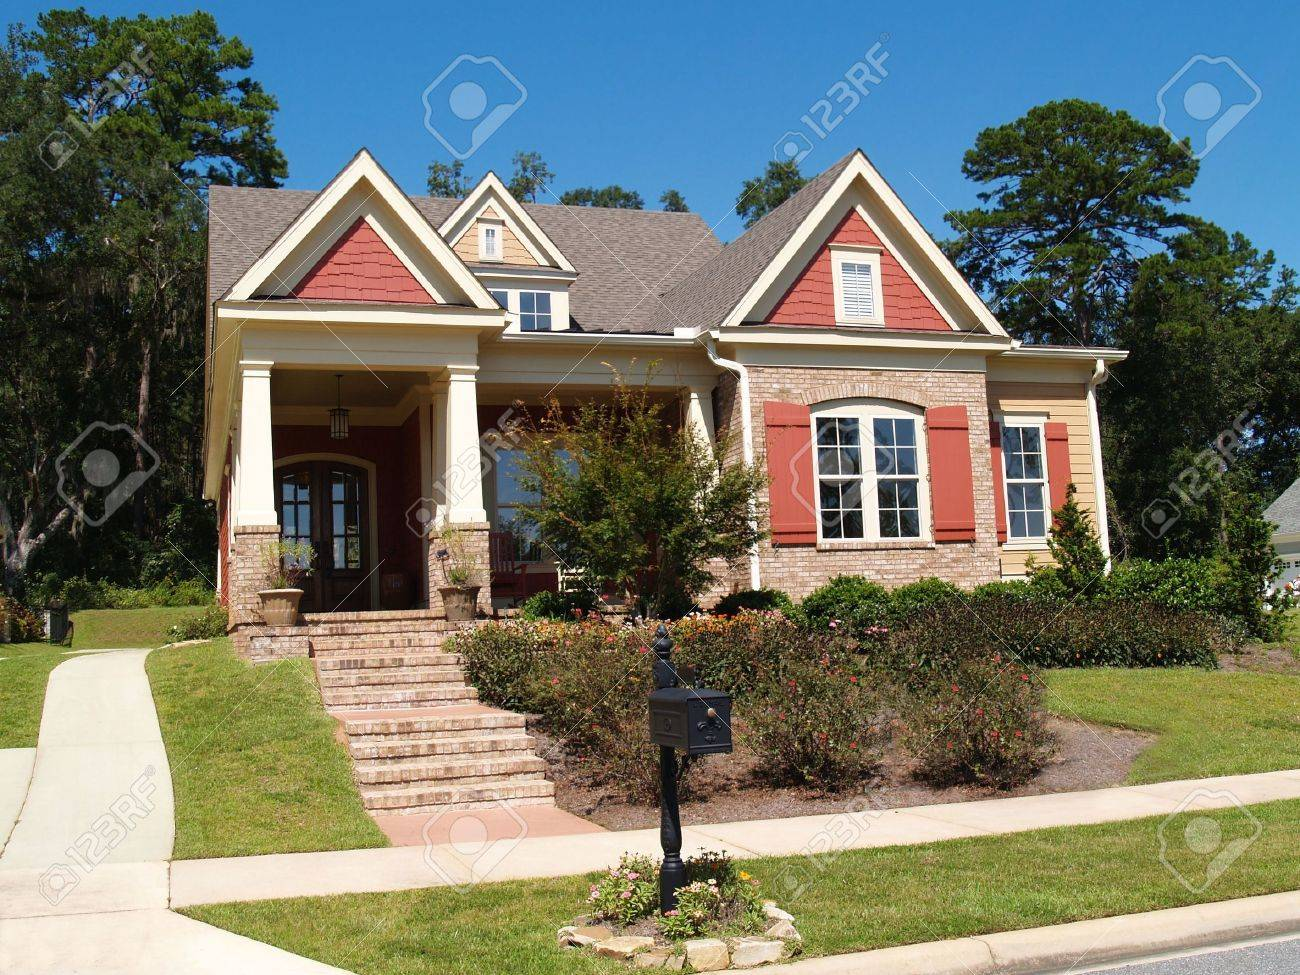 Beige brick home having peach and white trim with steps leading up to squares columns on the porch. - 6511098